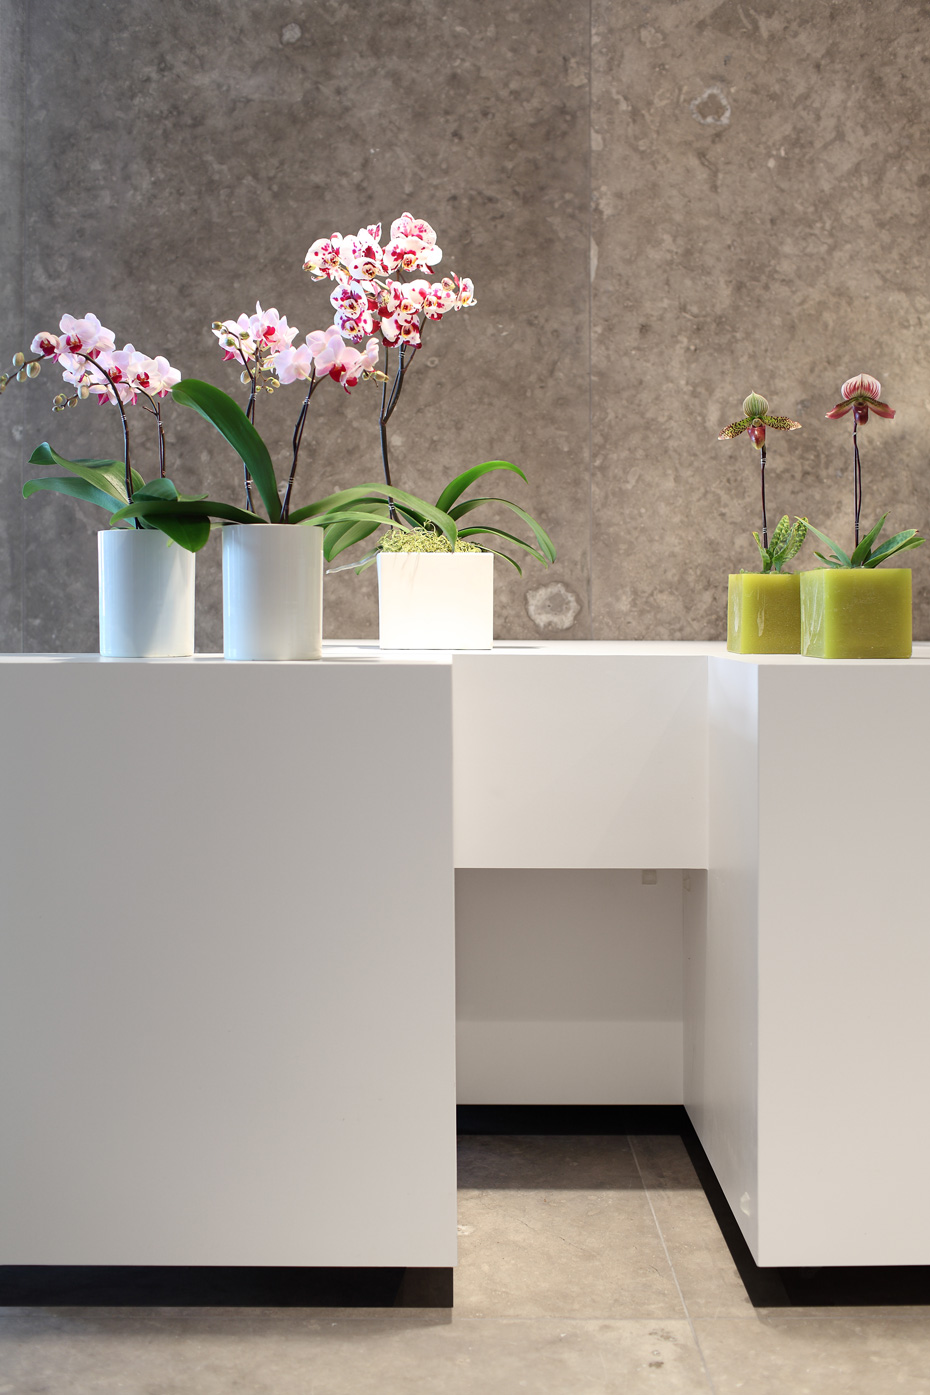 office of mcfarlane biggar architects + designers, Vancouver, Granville Island Florist